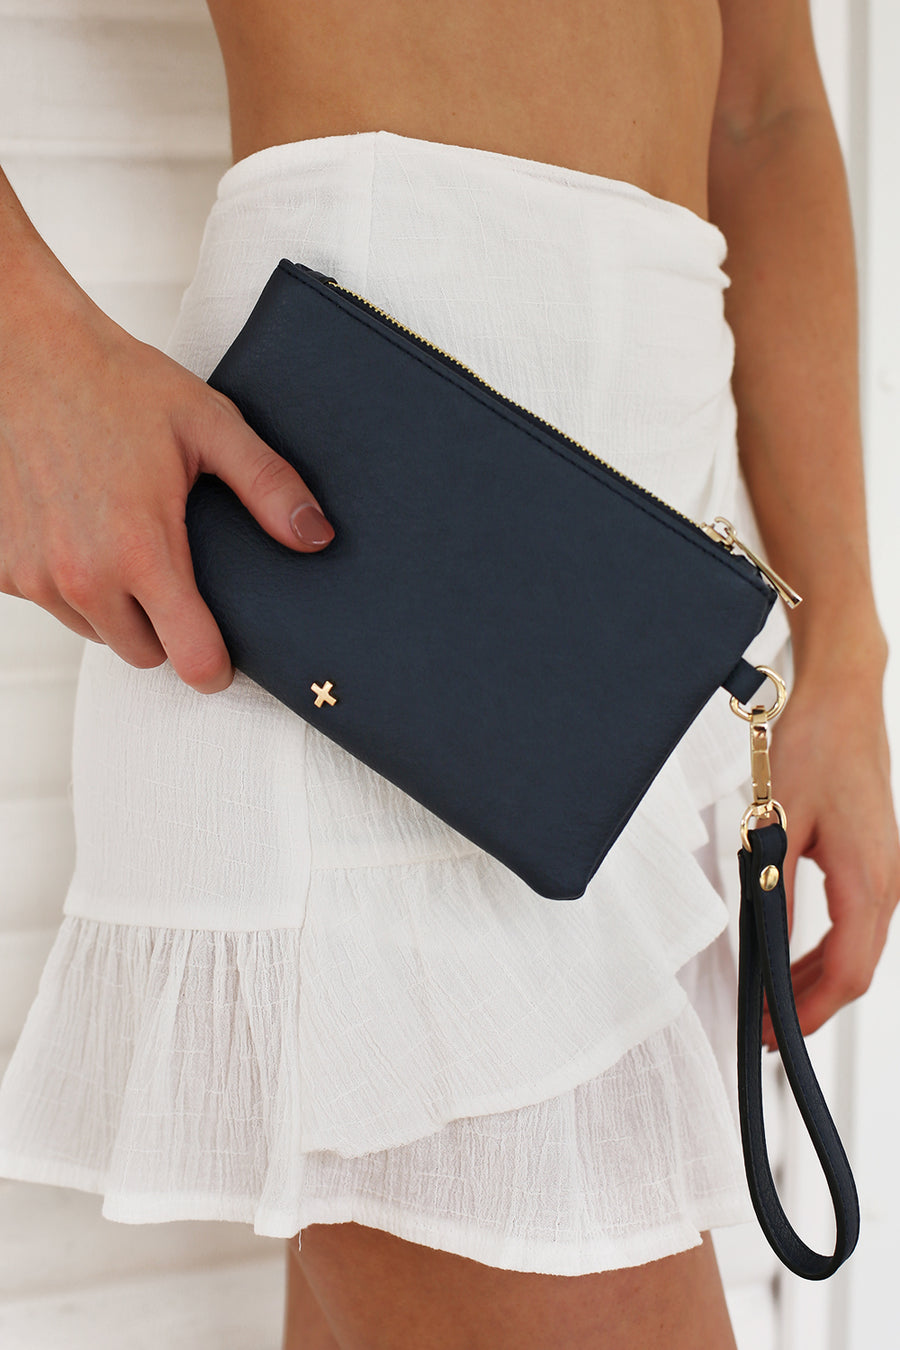 Bella Clutch in Navy for $39.95